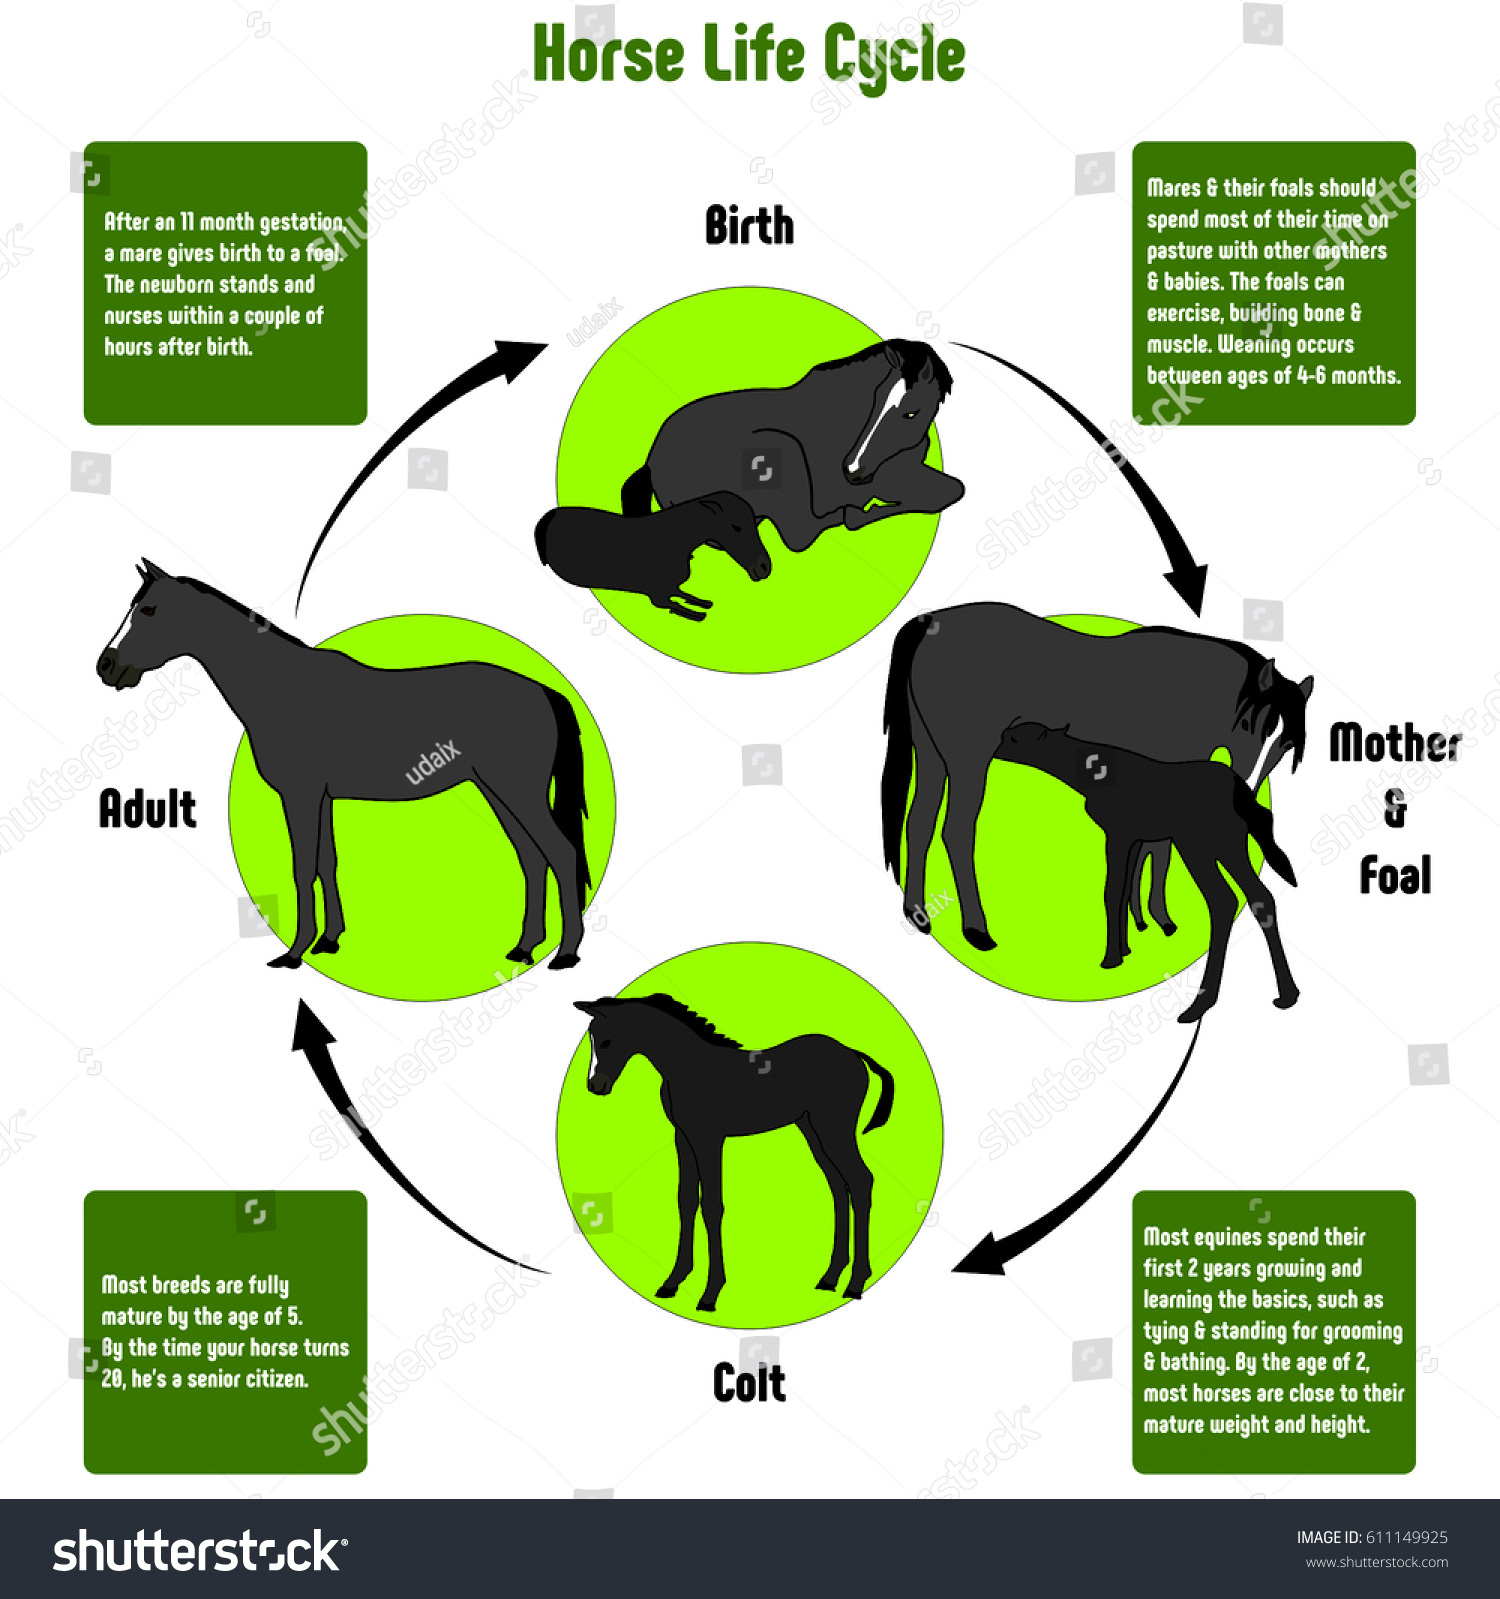 Horse life cycle diagram all stages stock illustration 611149925 horse life cycle diagram with all stages including birth mother and foal colt and adult simple pooptronica Image collections